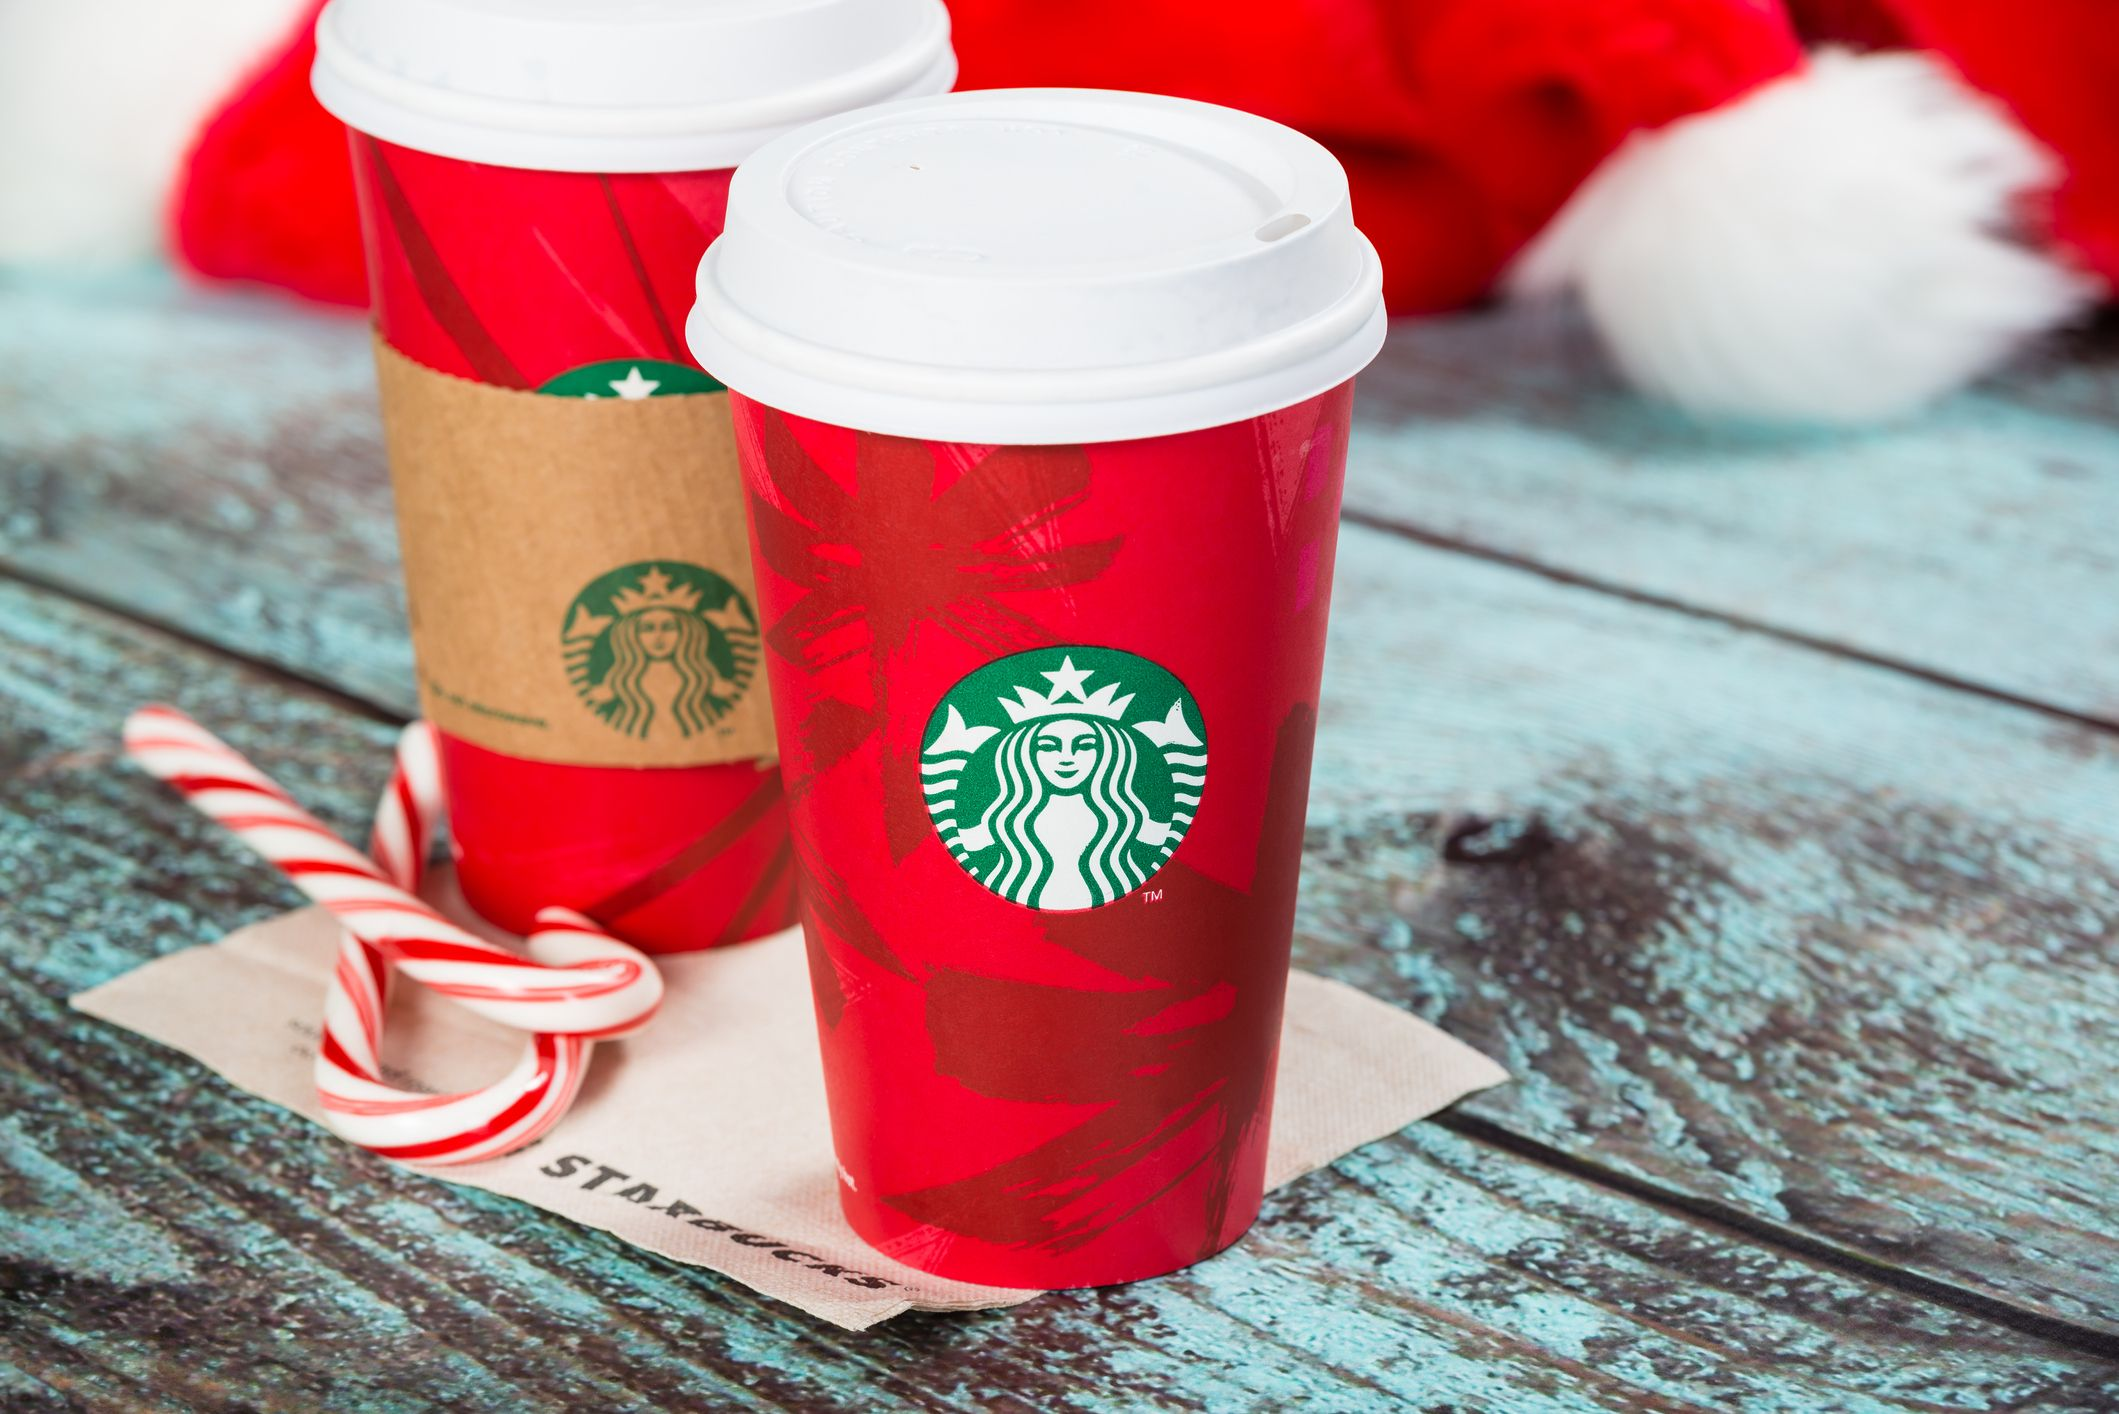 Is Starbucks Open on Christmas 2019